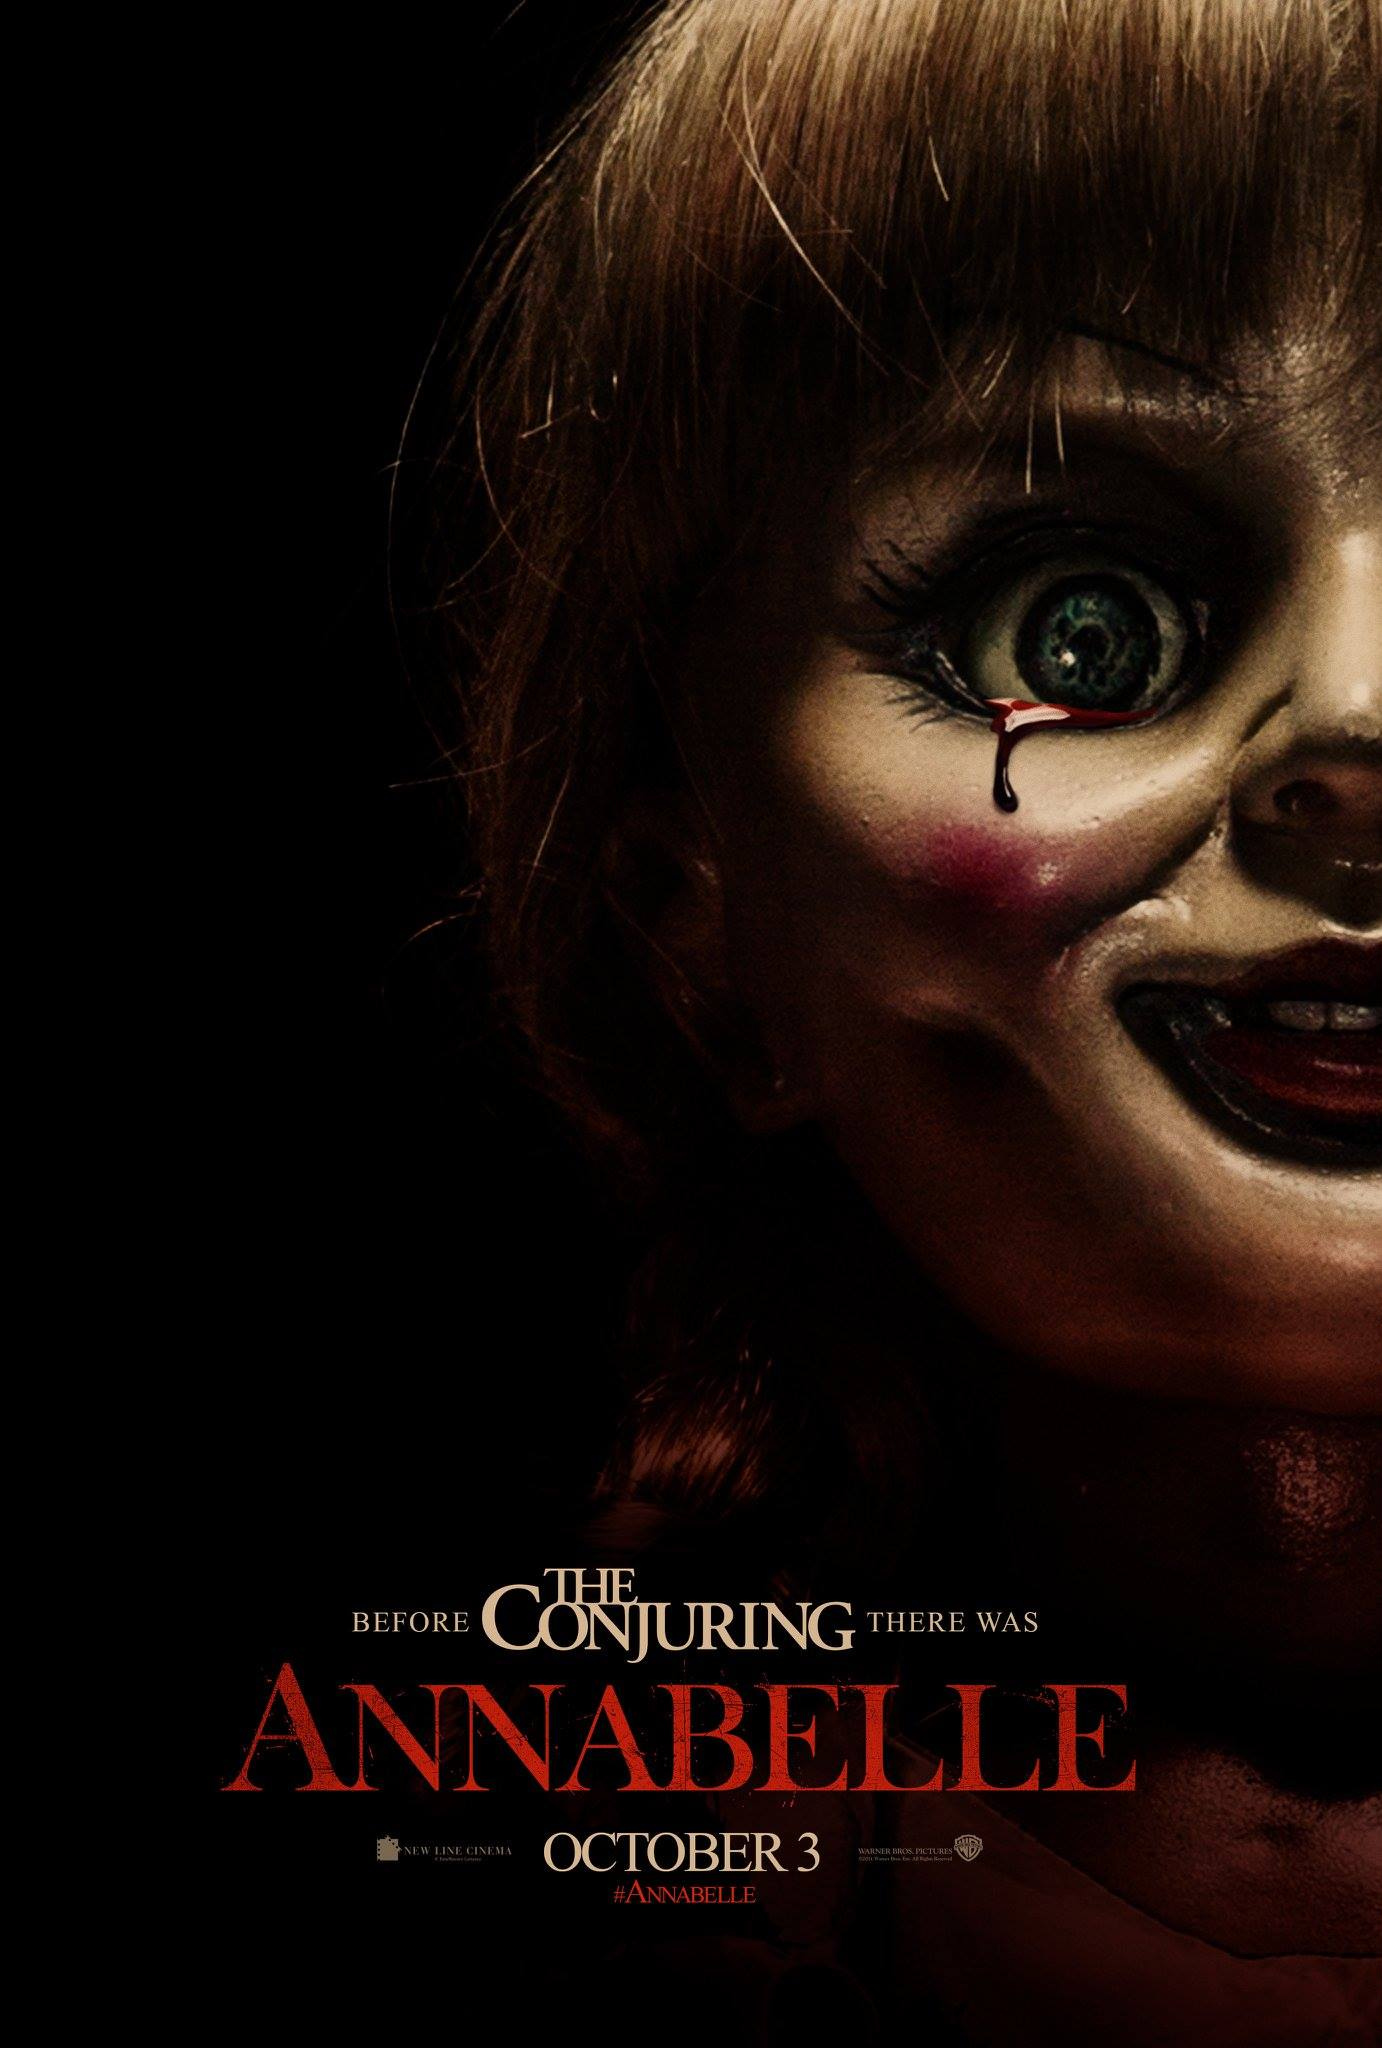 Two Minute Movies: Annabelle